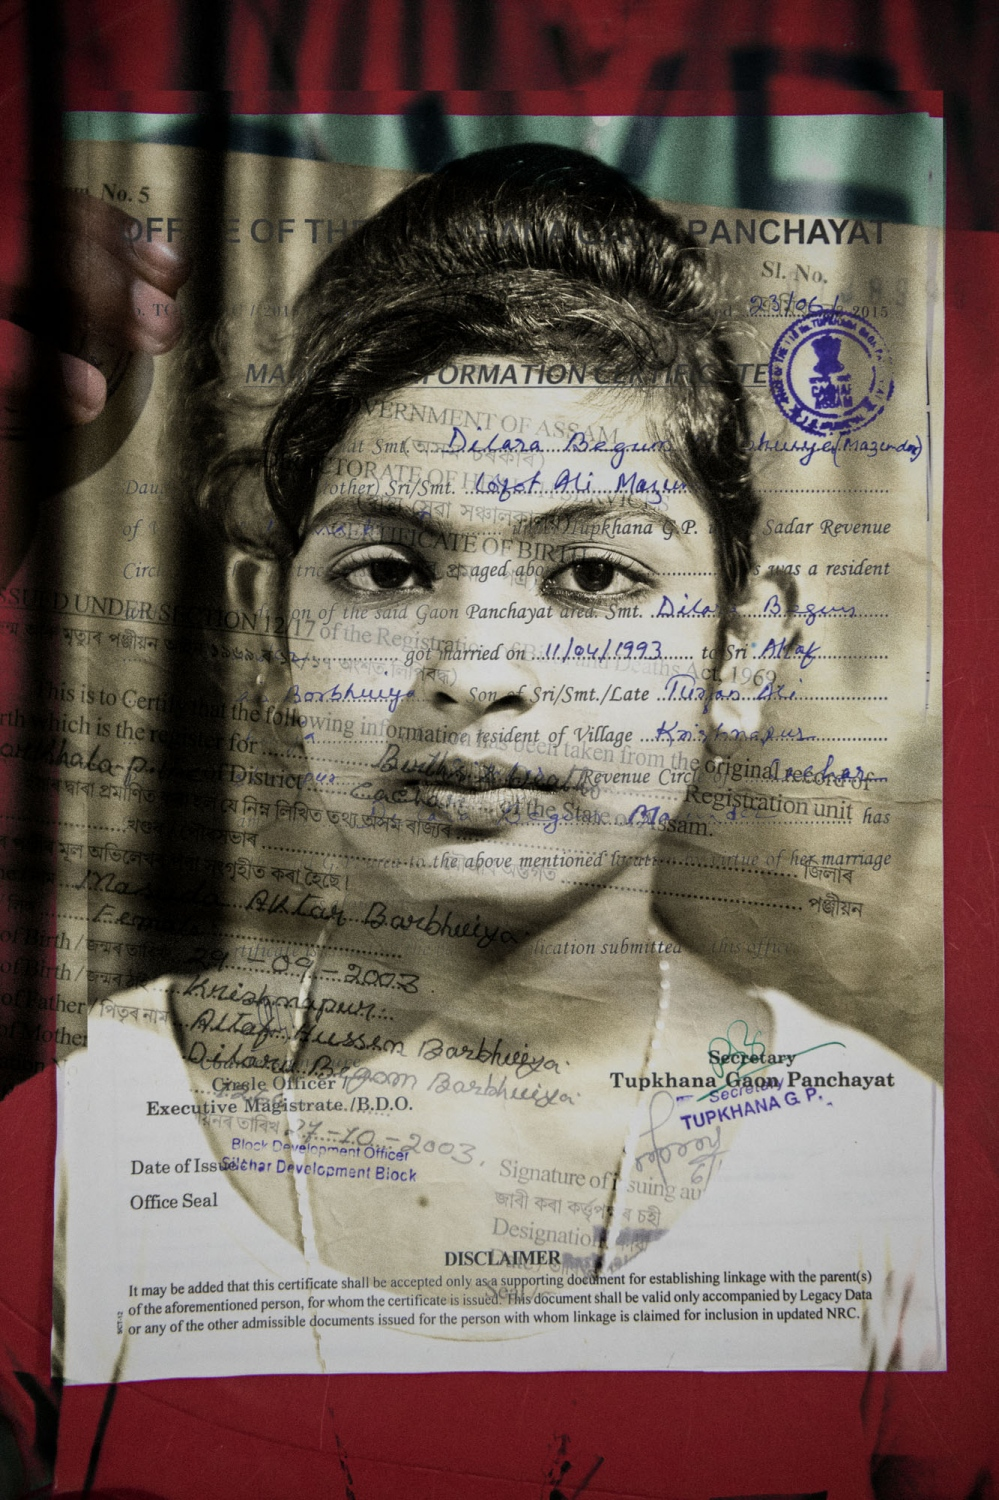 Nasuda Aktra Barbhuiya, 14 years old. She and her mother are not in the NRC list, but the rest of the family is. They have provided her birth certificate as proof, but it is not accepted. Her mother's name has been left out due to a misspelling of her name on her marriage certificate. It is common that only one or two members of a family are excluded from the list, often for no obvious reason, or simple errors such as a misspelling.